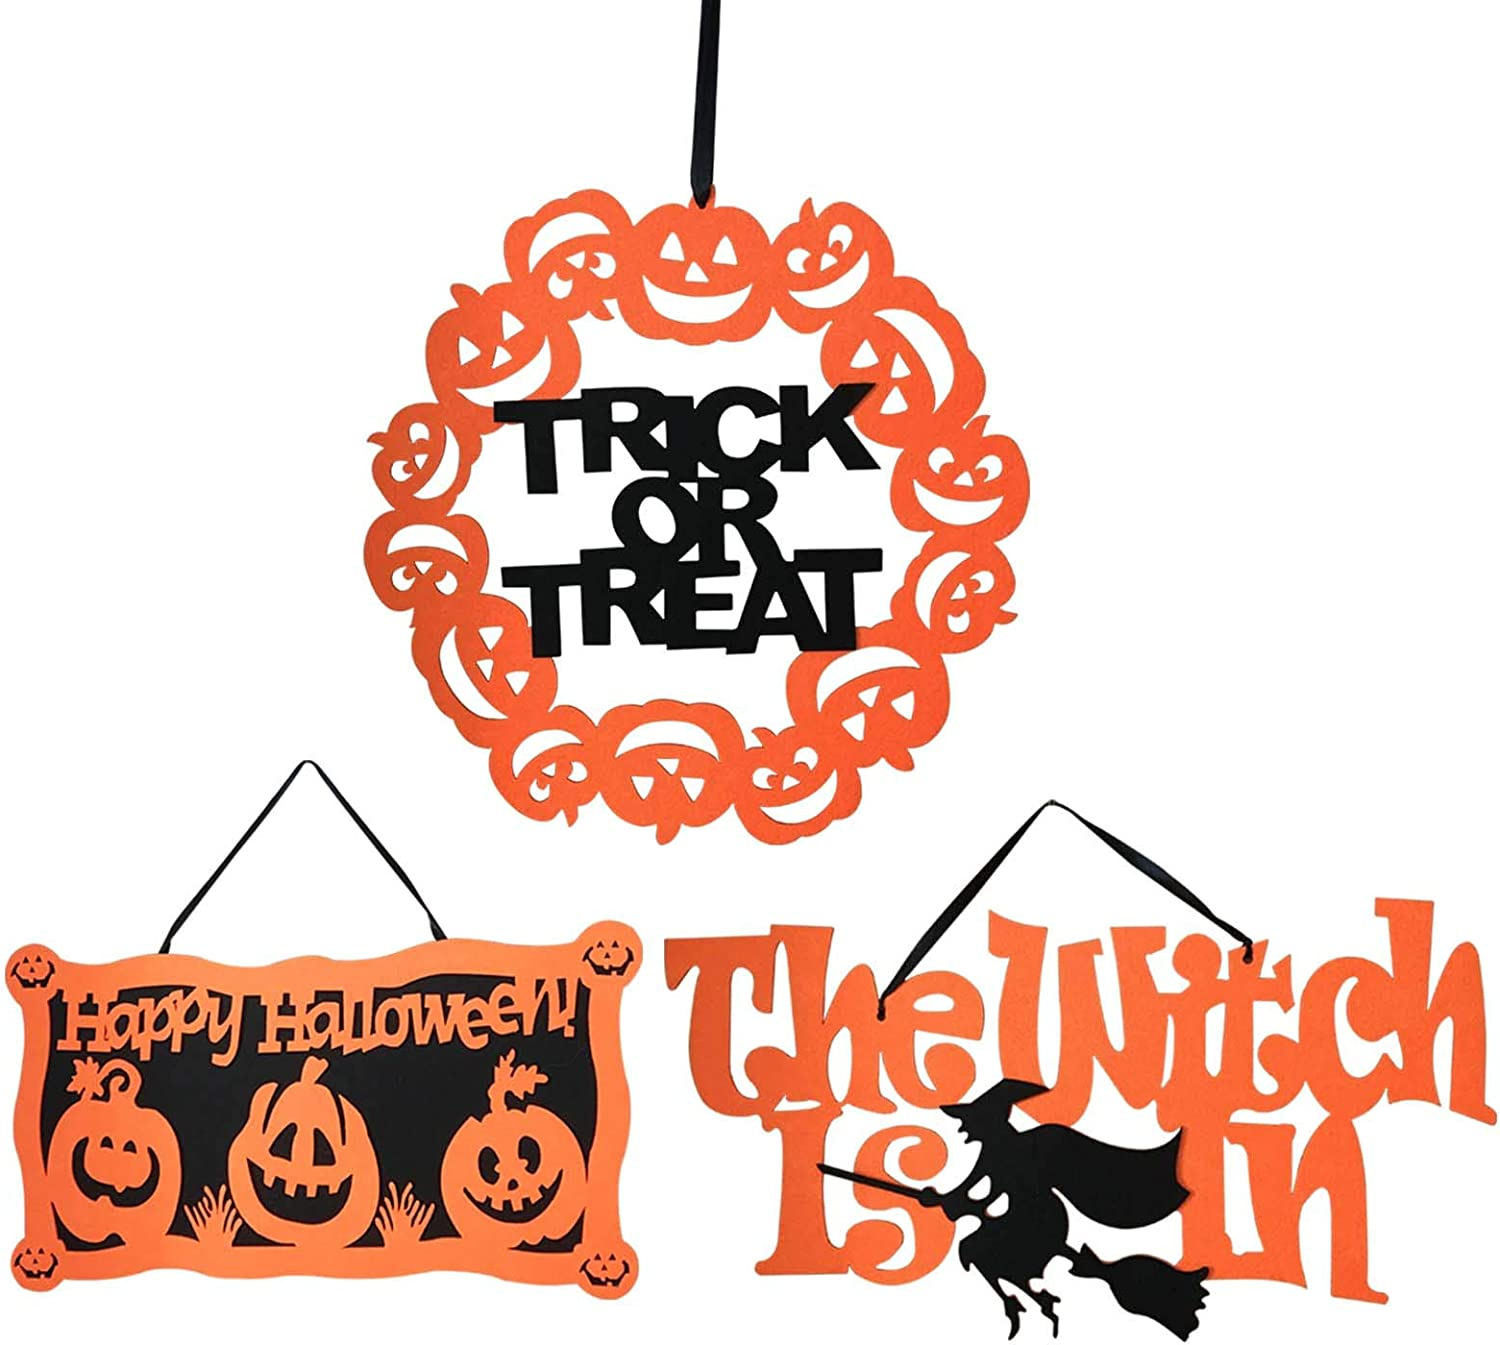 Halloween Signs for Home Office Door Wall Decorations - Happy Halloween & Trick Or Treat Sign Decor - Halloween Hanging Decorations Outdoor Indoor, Set of 3